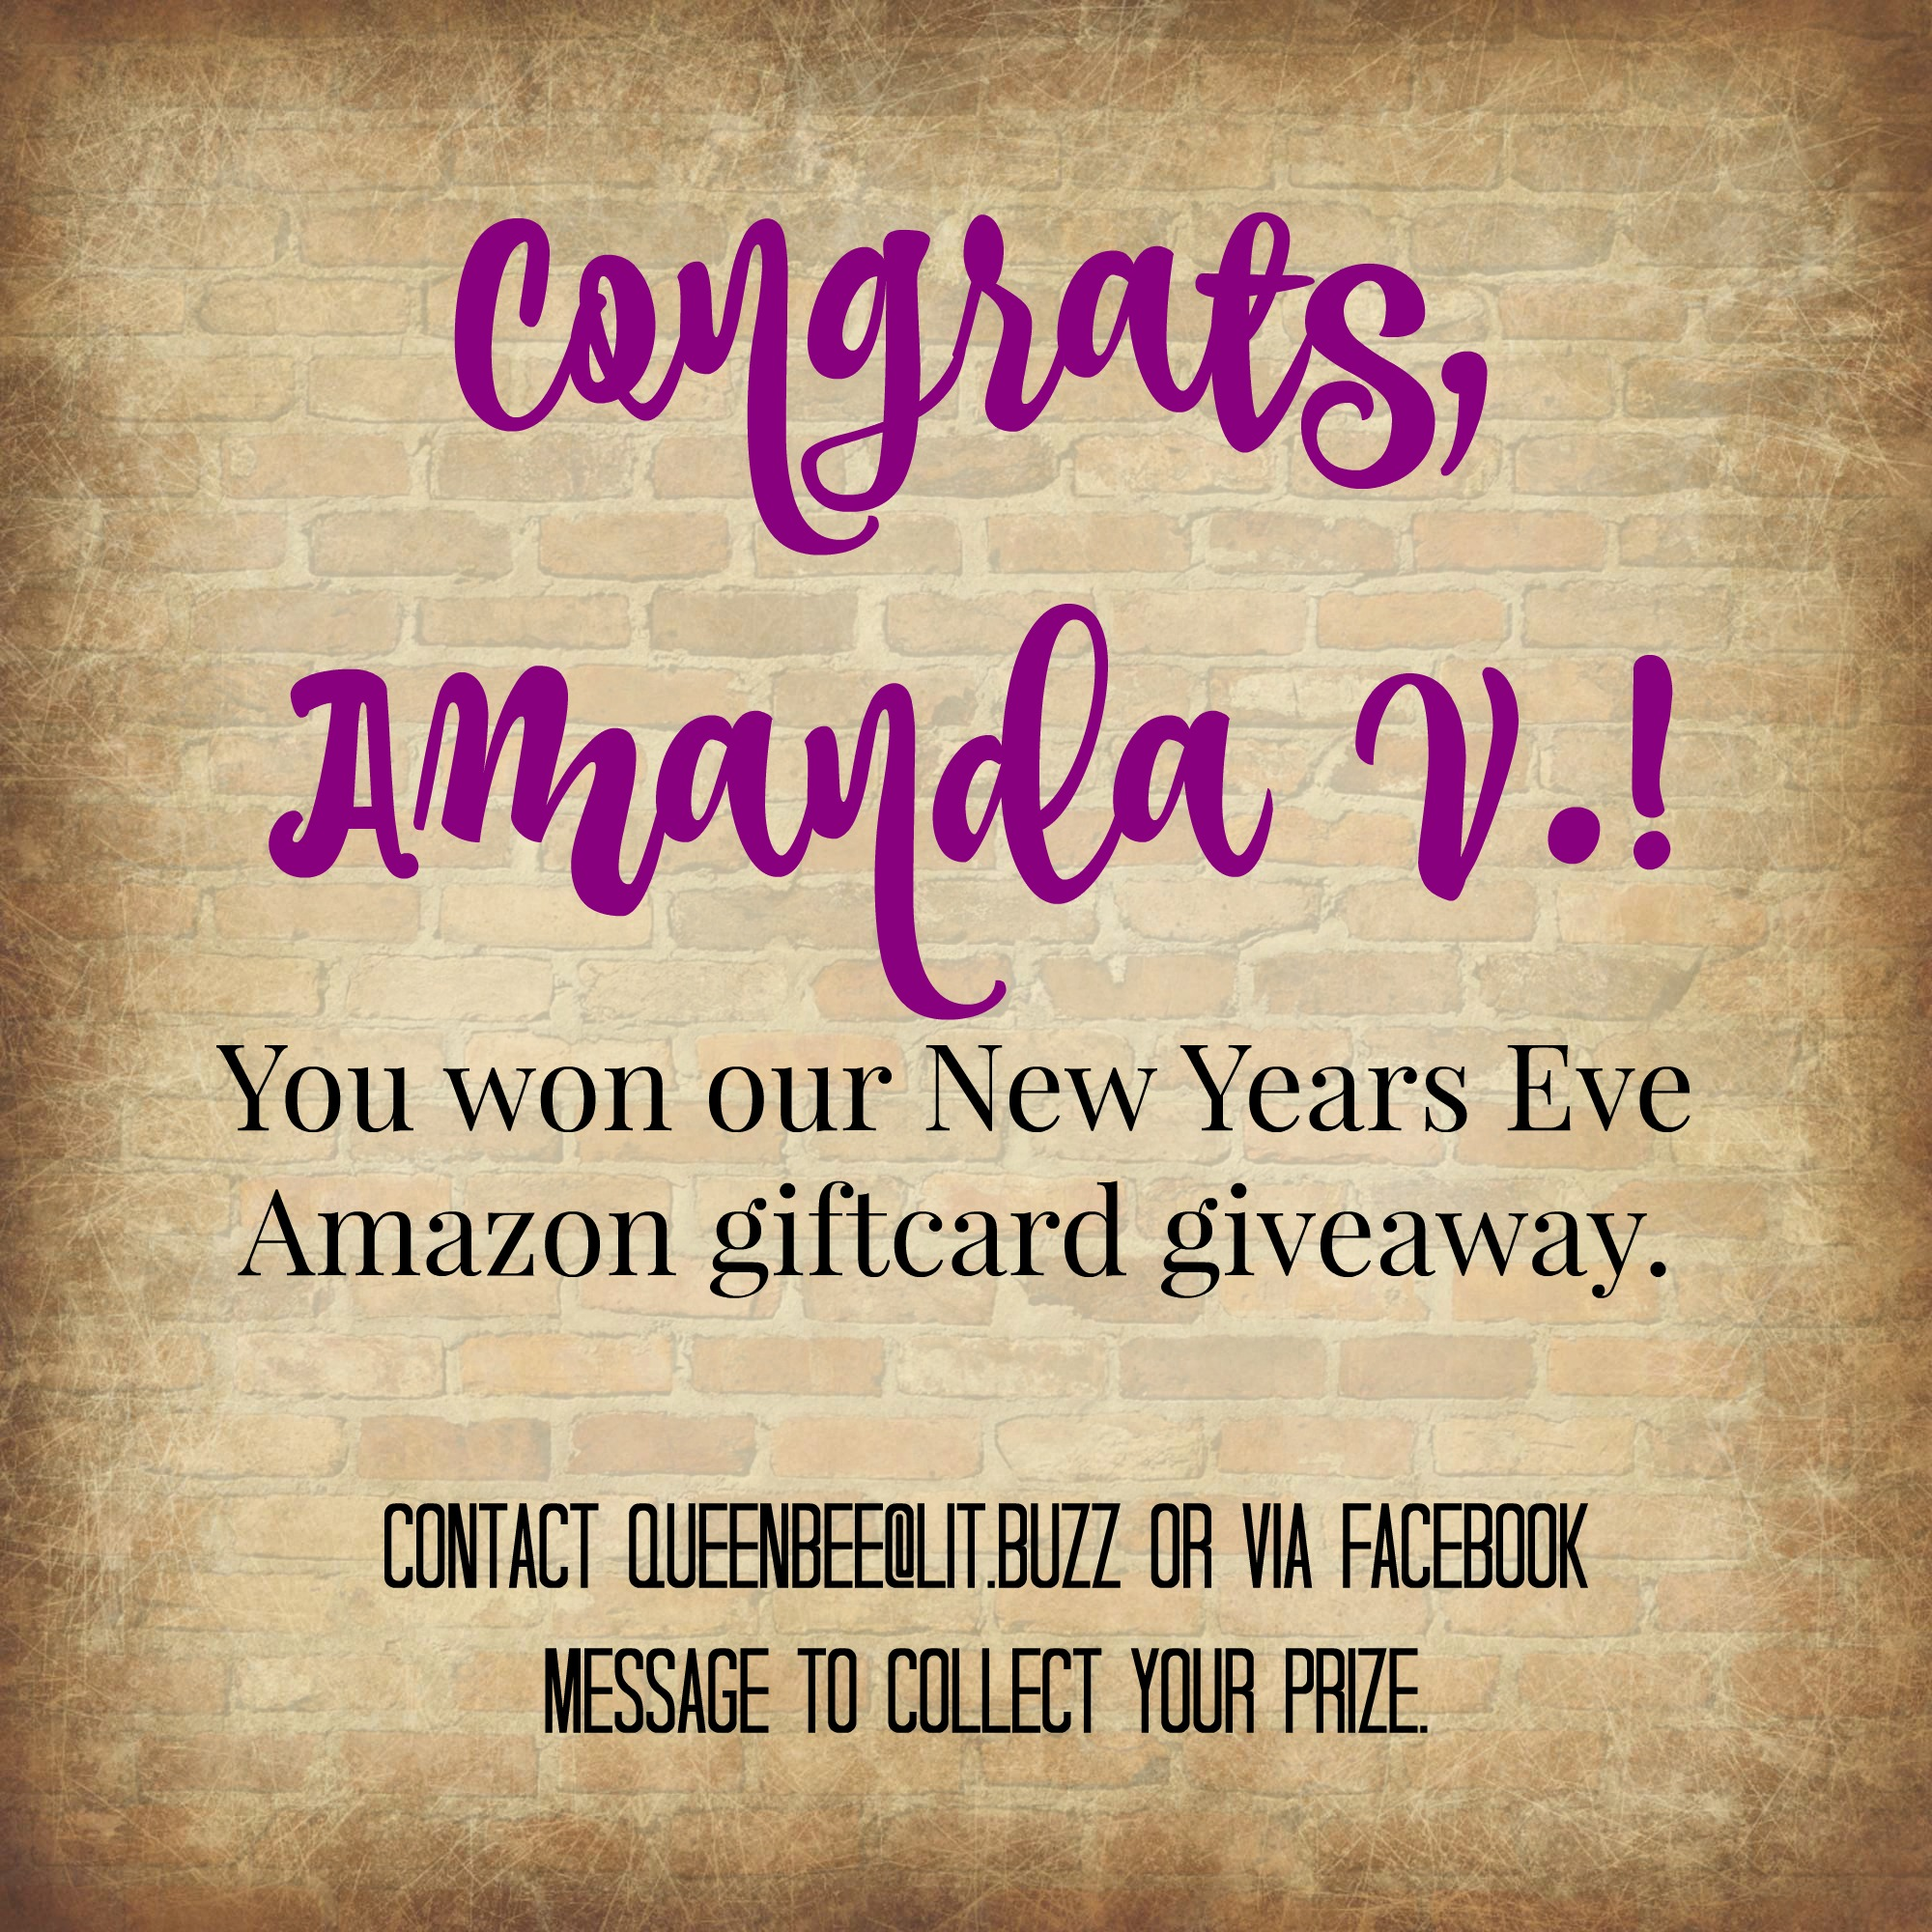 New Years Eve Giftcard Winner Announcement! ⋆ LitBuzz